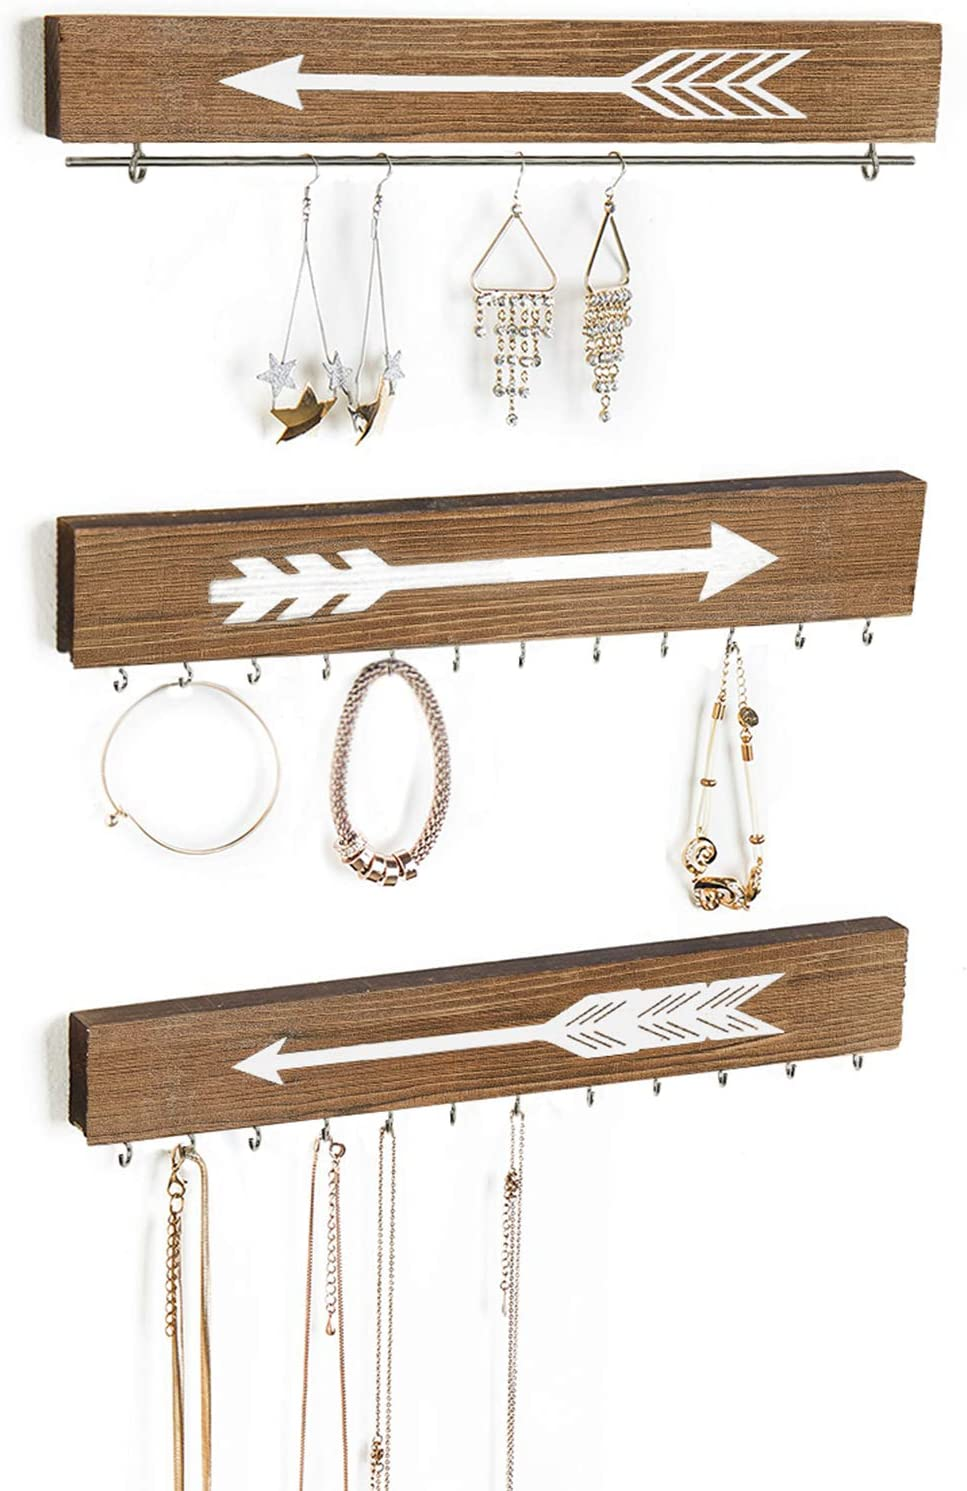 CHICVITA Farmhouse Wood Jewelry Organizer Wall Mounted Hanging Rustic Necklace Holder Earring Bar Display Rack with Arrow Decor for Girl Woman, Set of 3